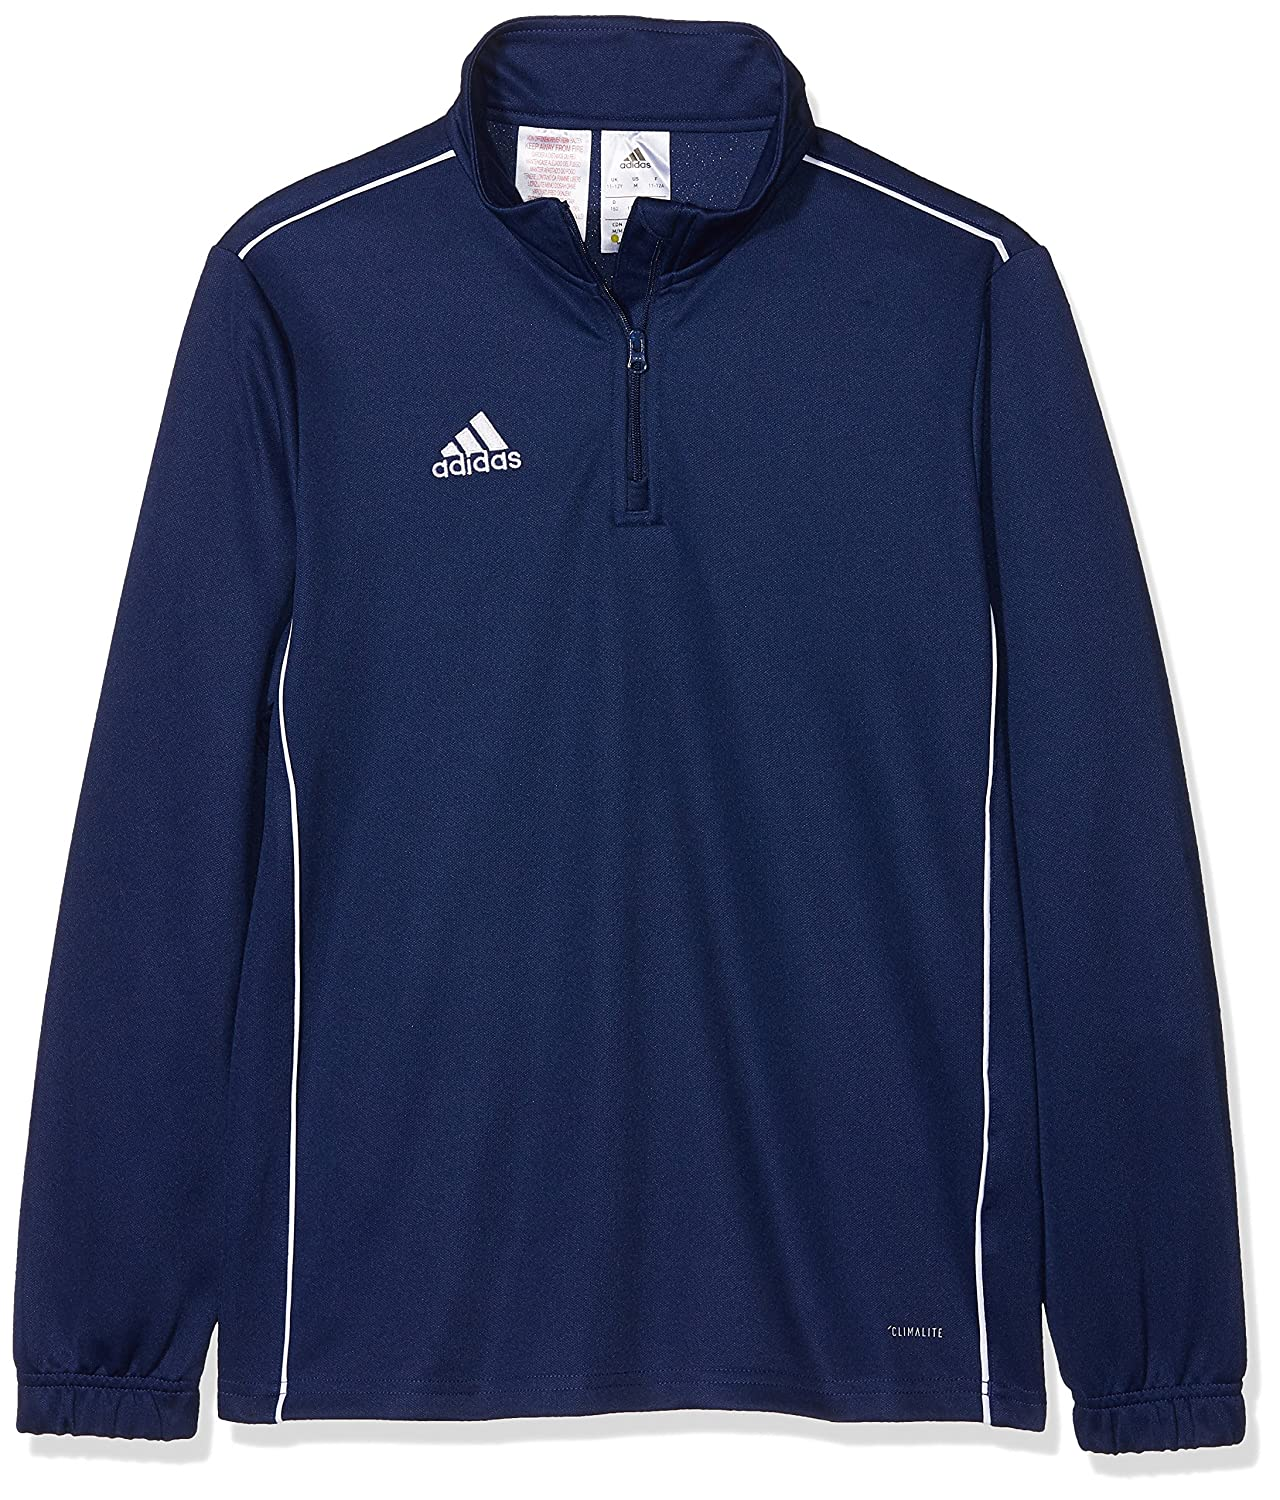 adidas Children's Training Top – CORE18, Children's Children' s